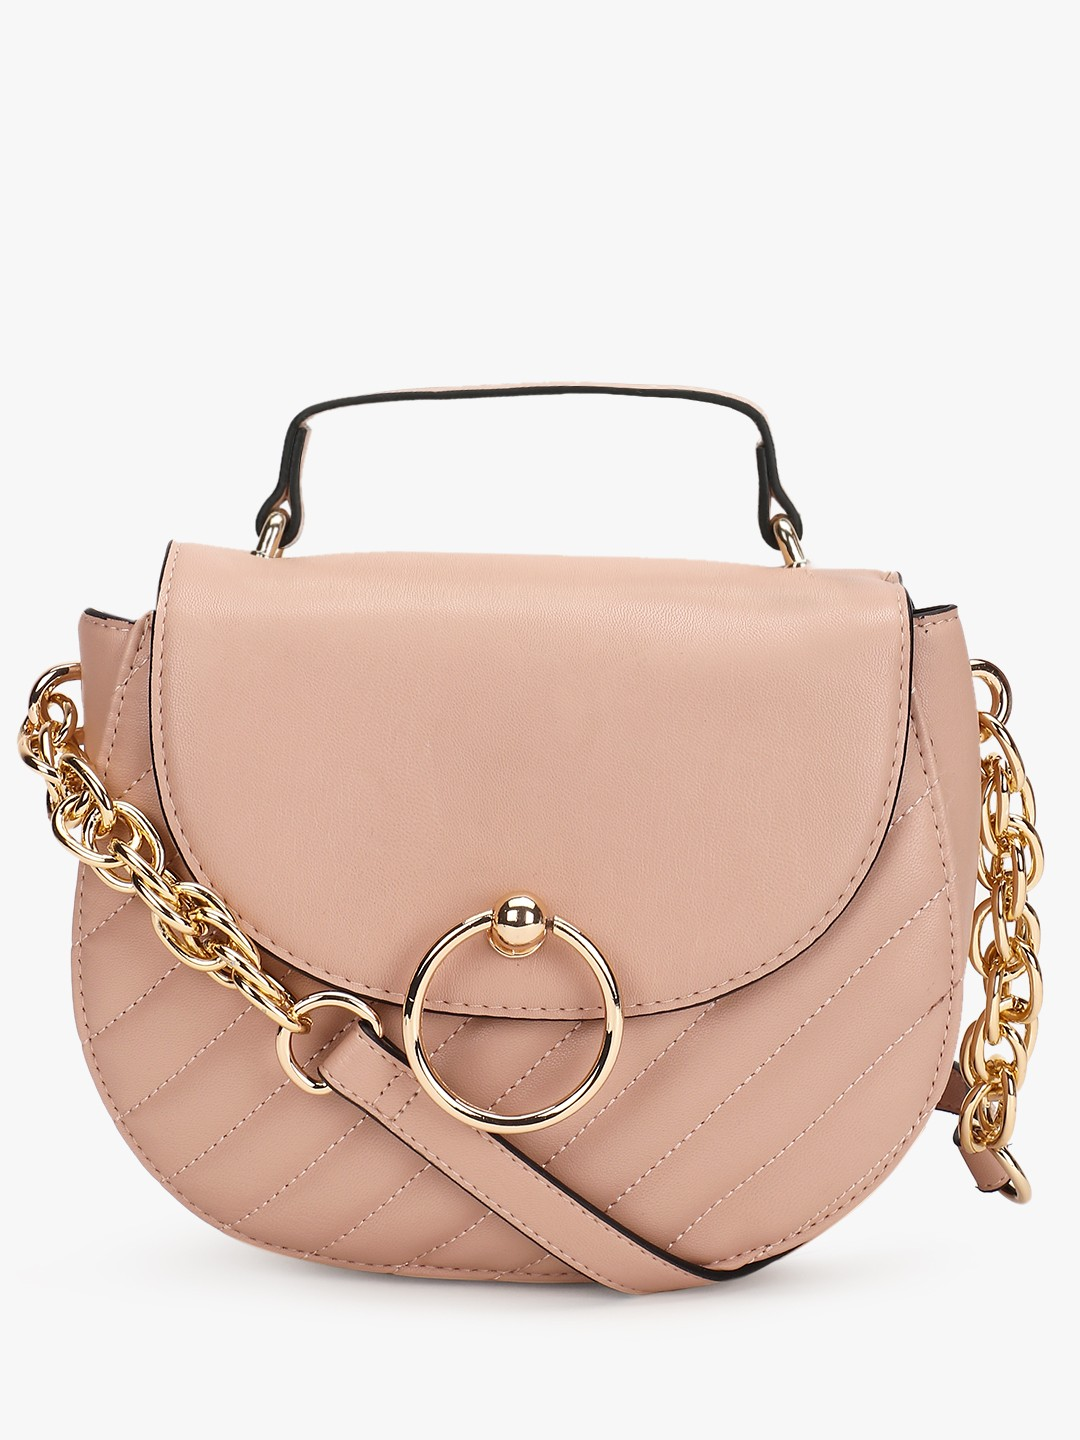 New Look OATMEAL Quilted Mini Saddle Bag 1